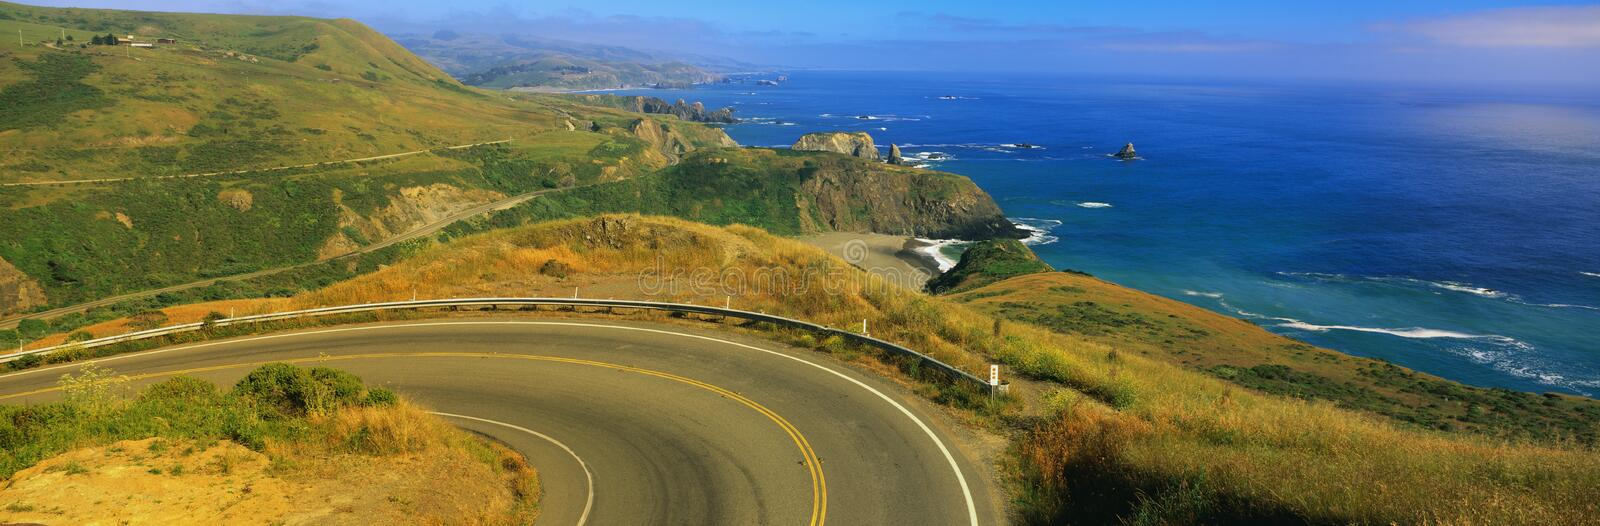 Pacific Coast Highway and ocean, CA stock images